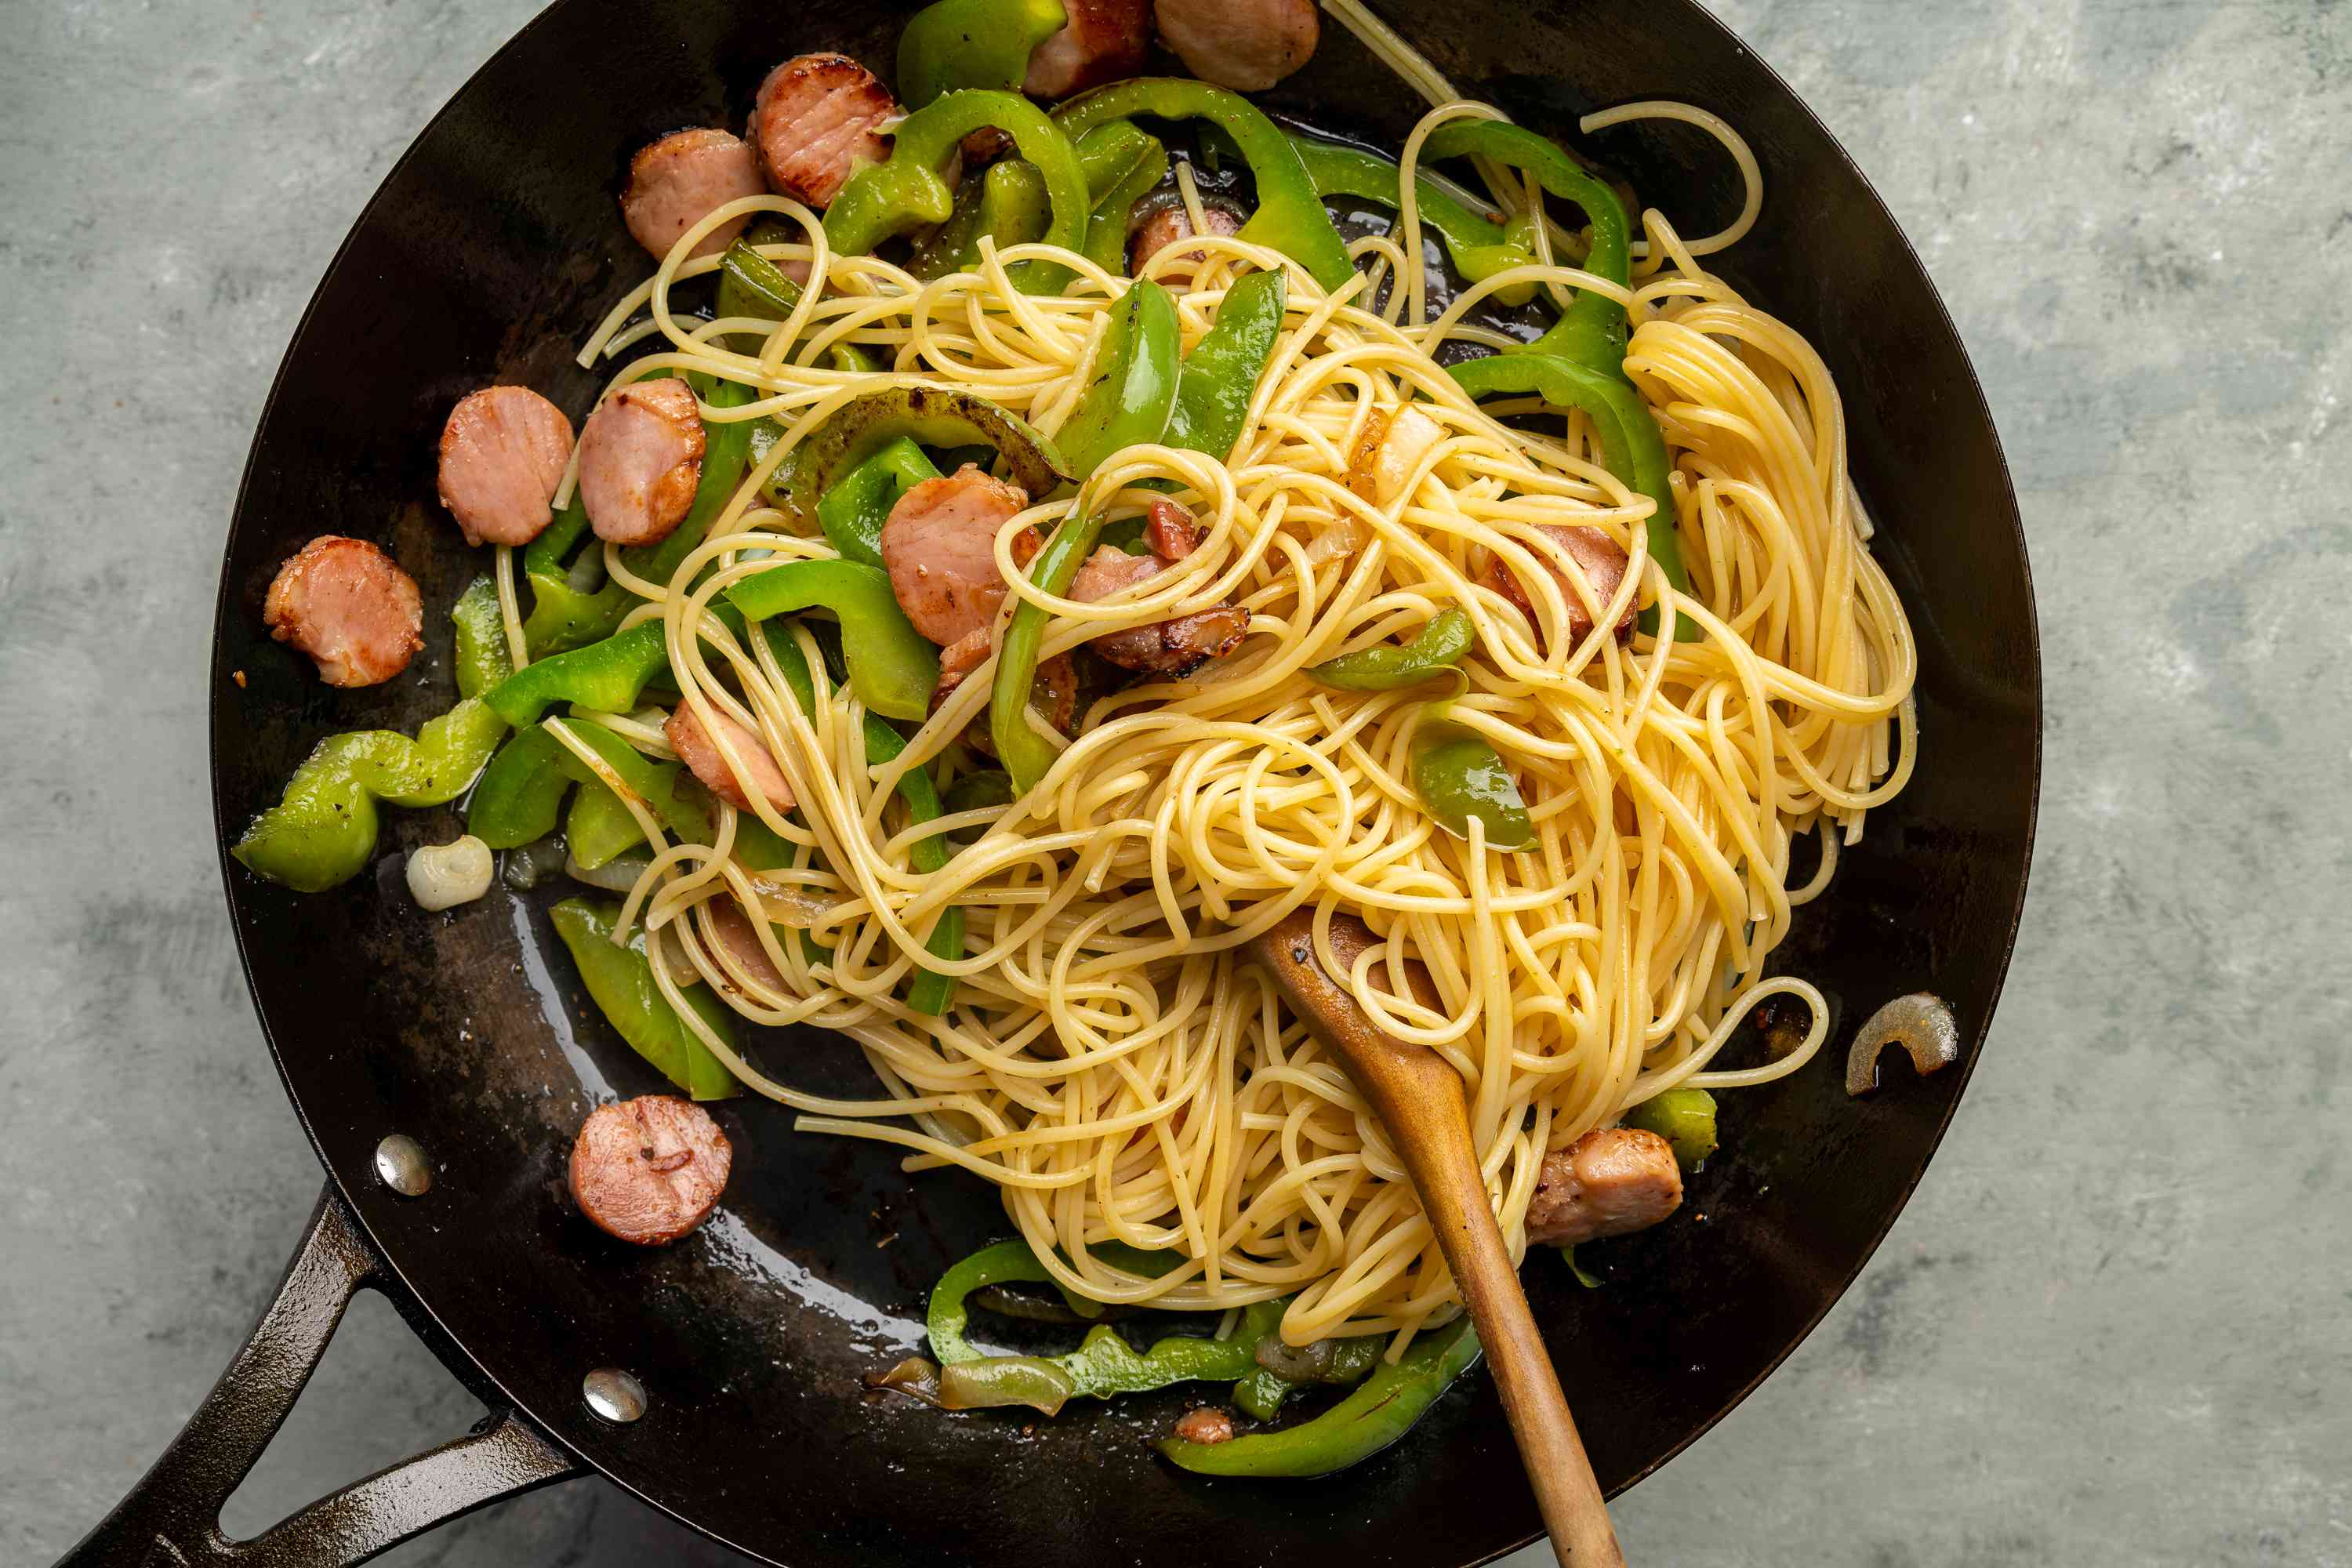 spaghetti added to the pepper and sausage in the skillet